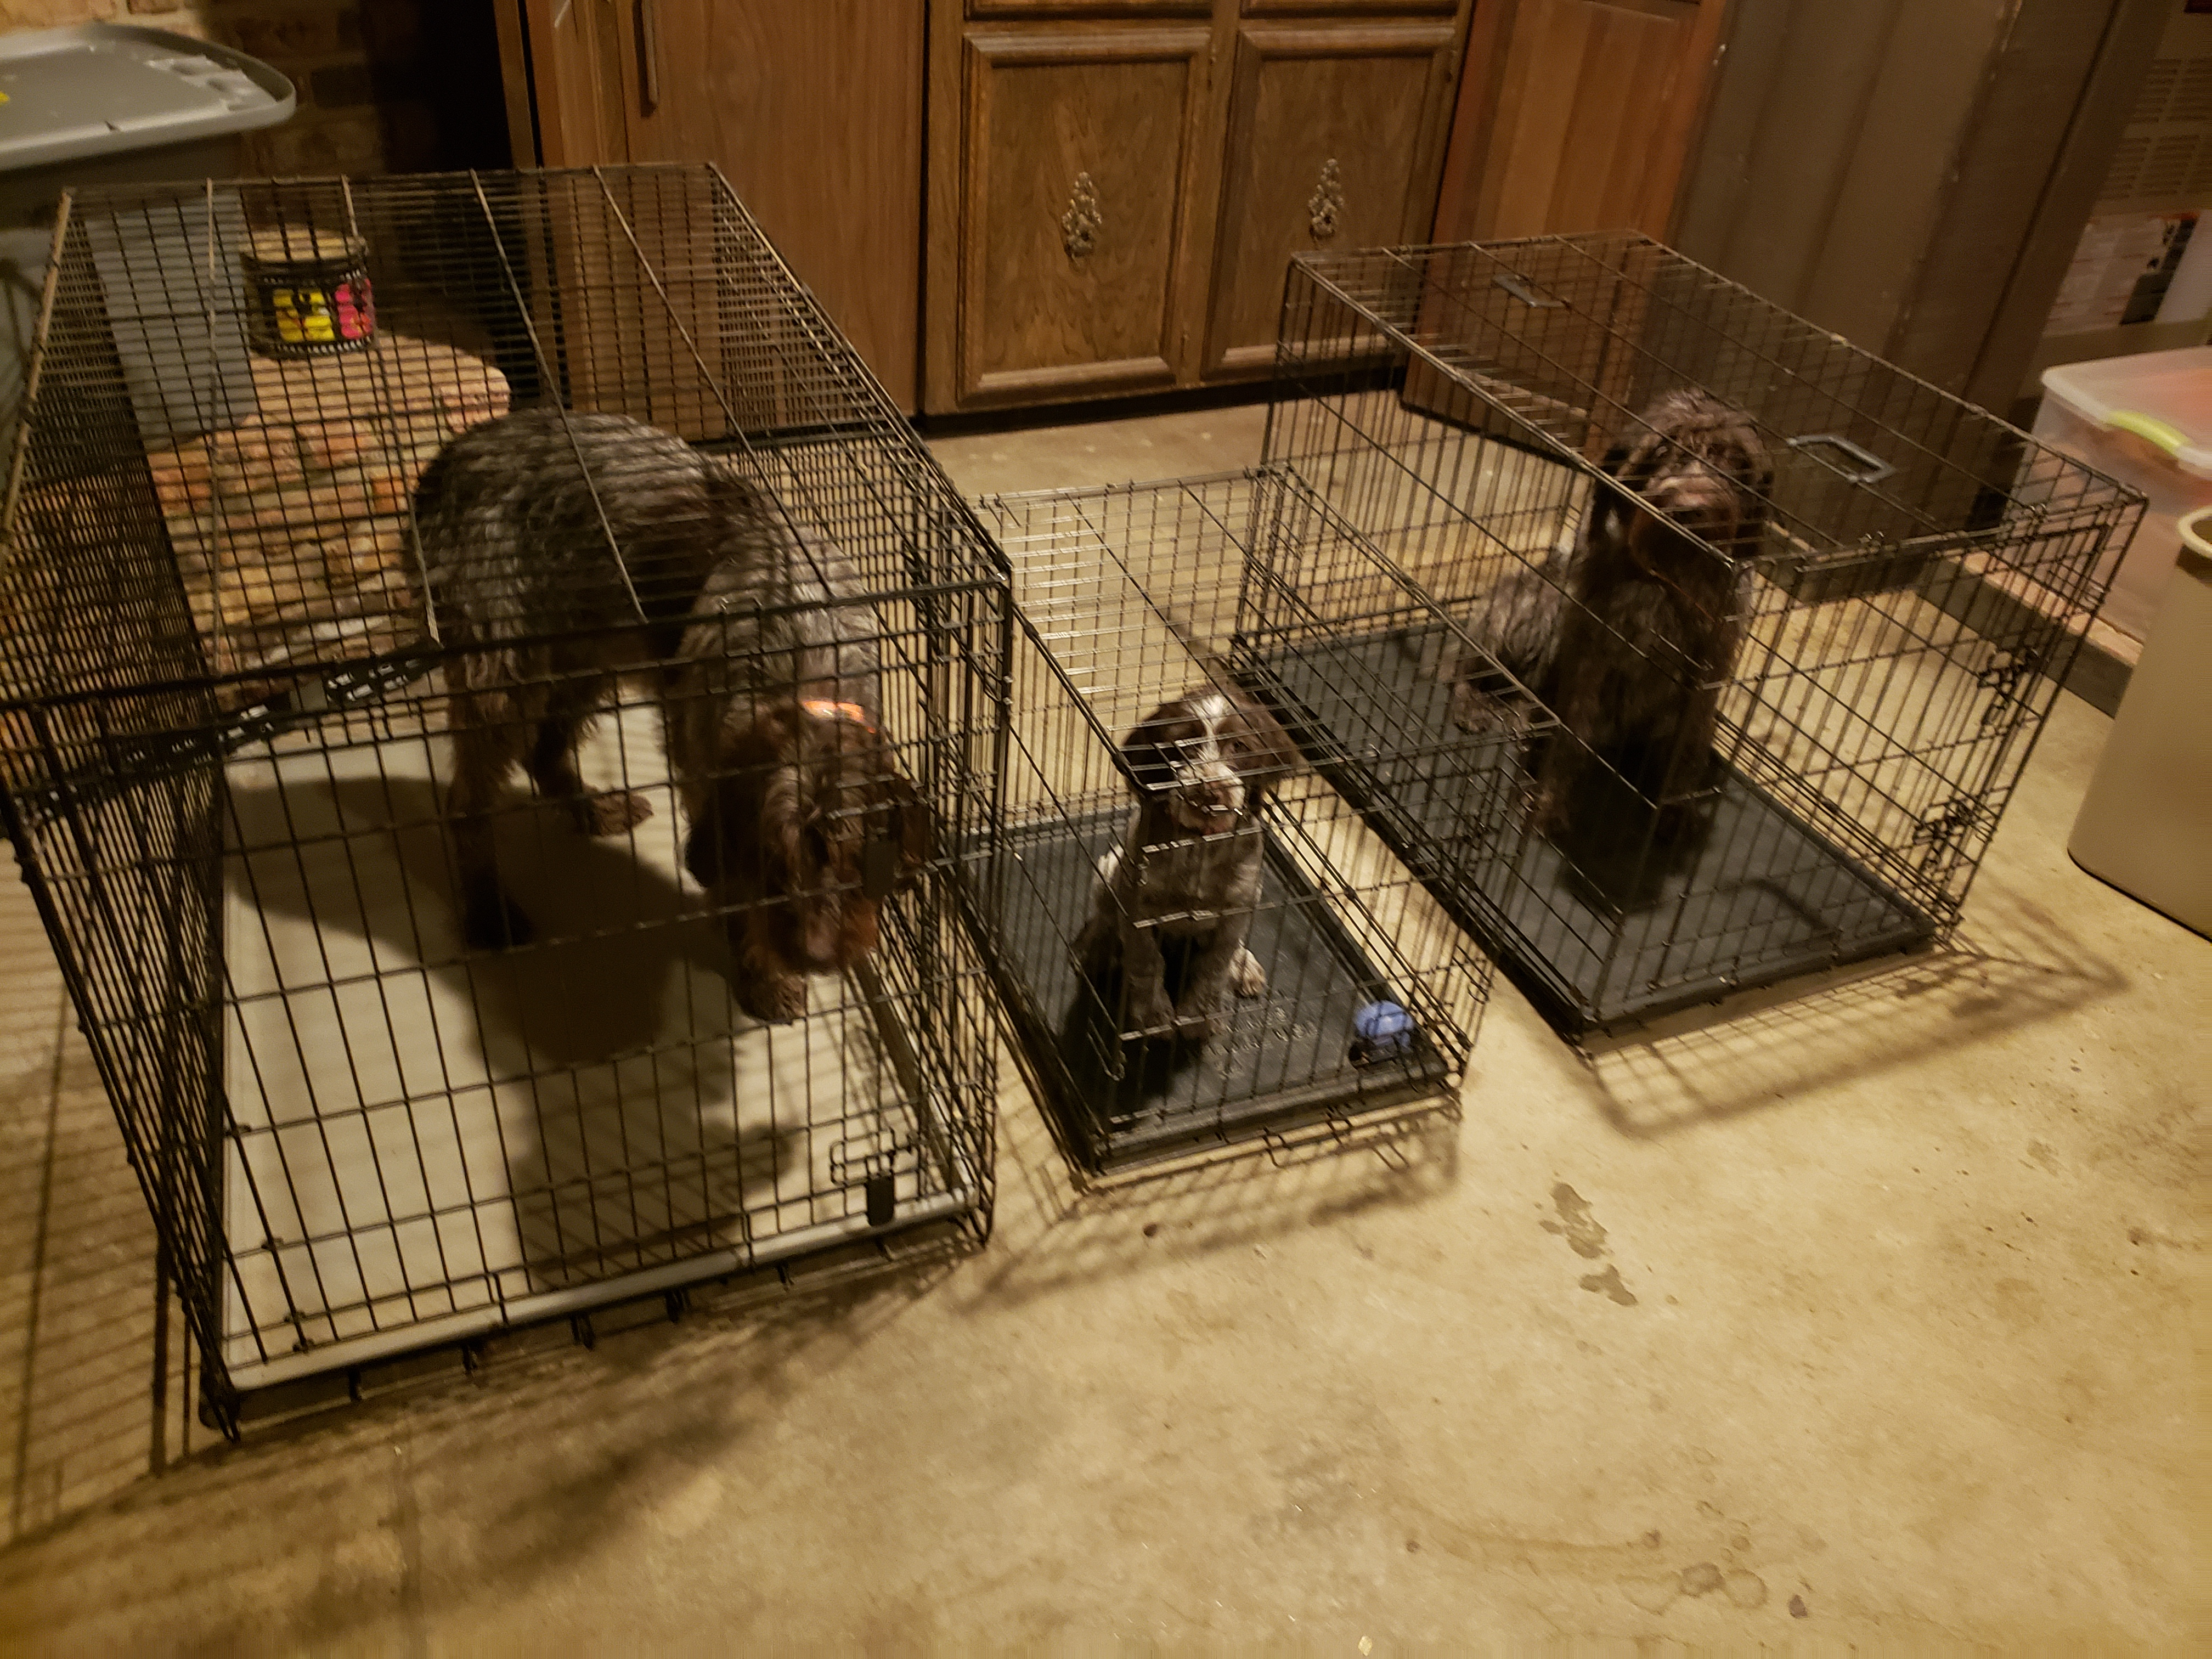 Wirehaired Pointing Griffon Puppy Crate